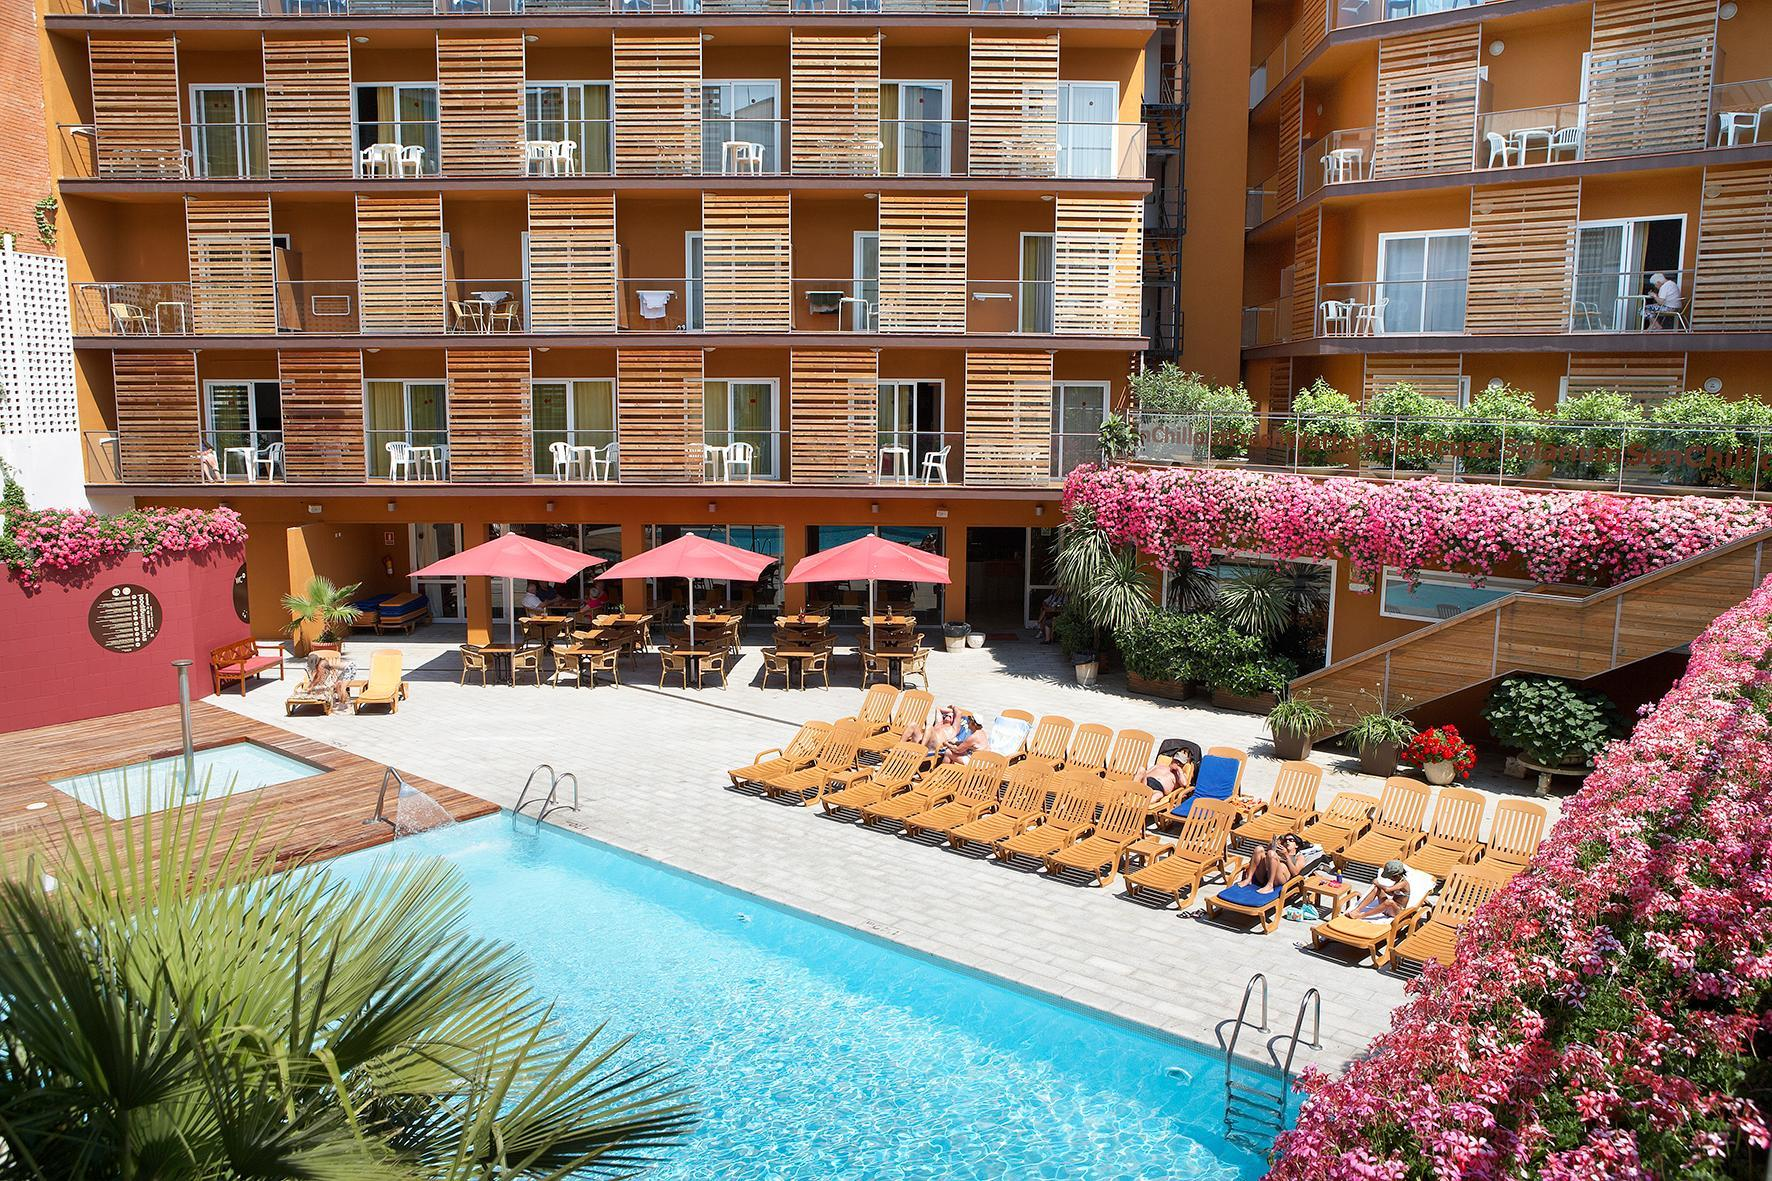 Alegria Plaza Paris Hotel (ex. Fergus Style Plaza Paris Hotel) in Lloret de Mar, Costa Brava, Spain